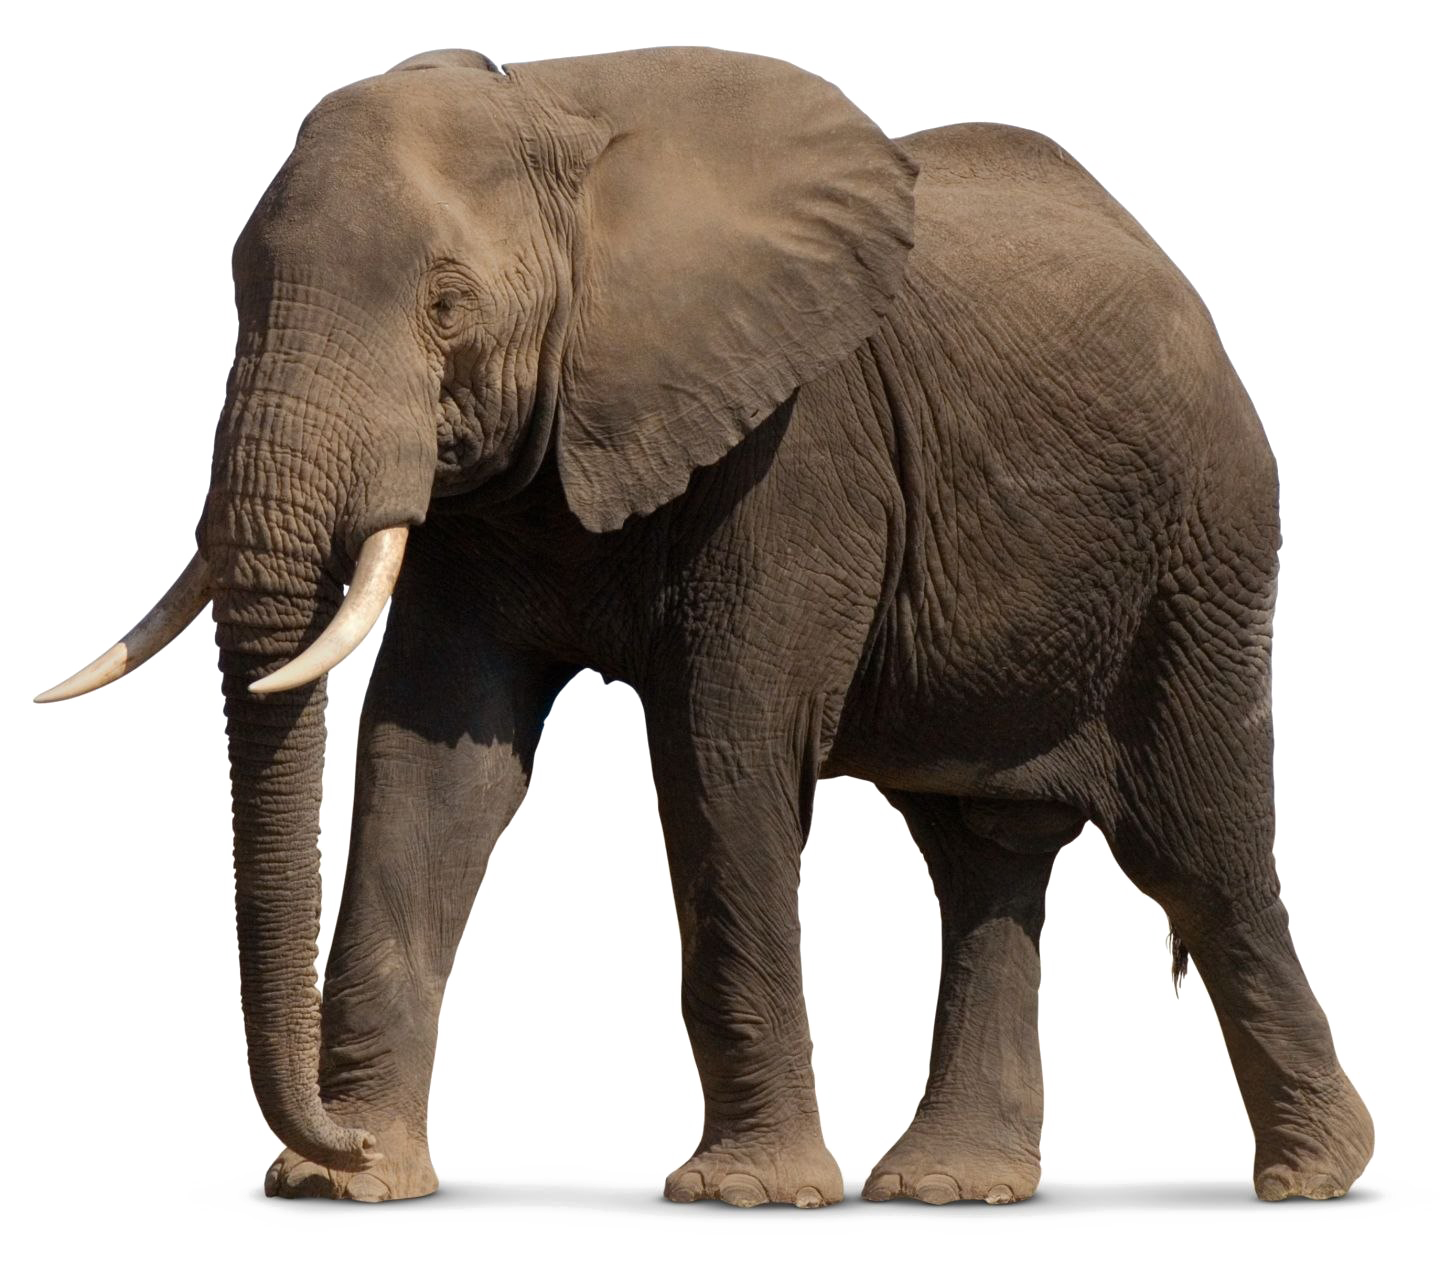 Elephant PNG Images Transparent Free Download.